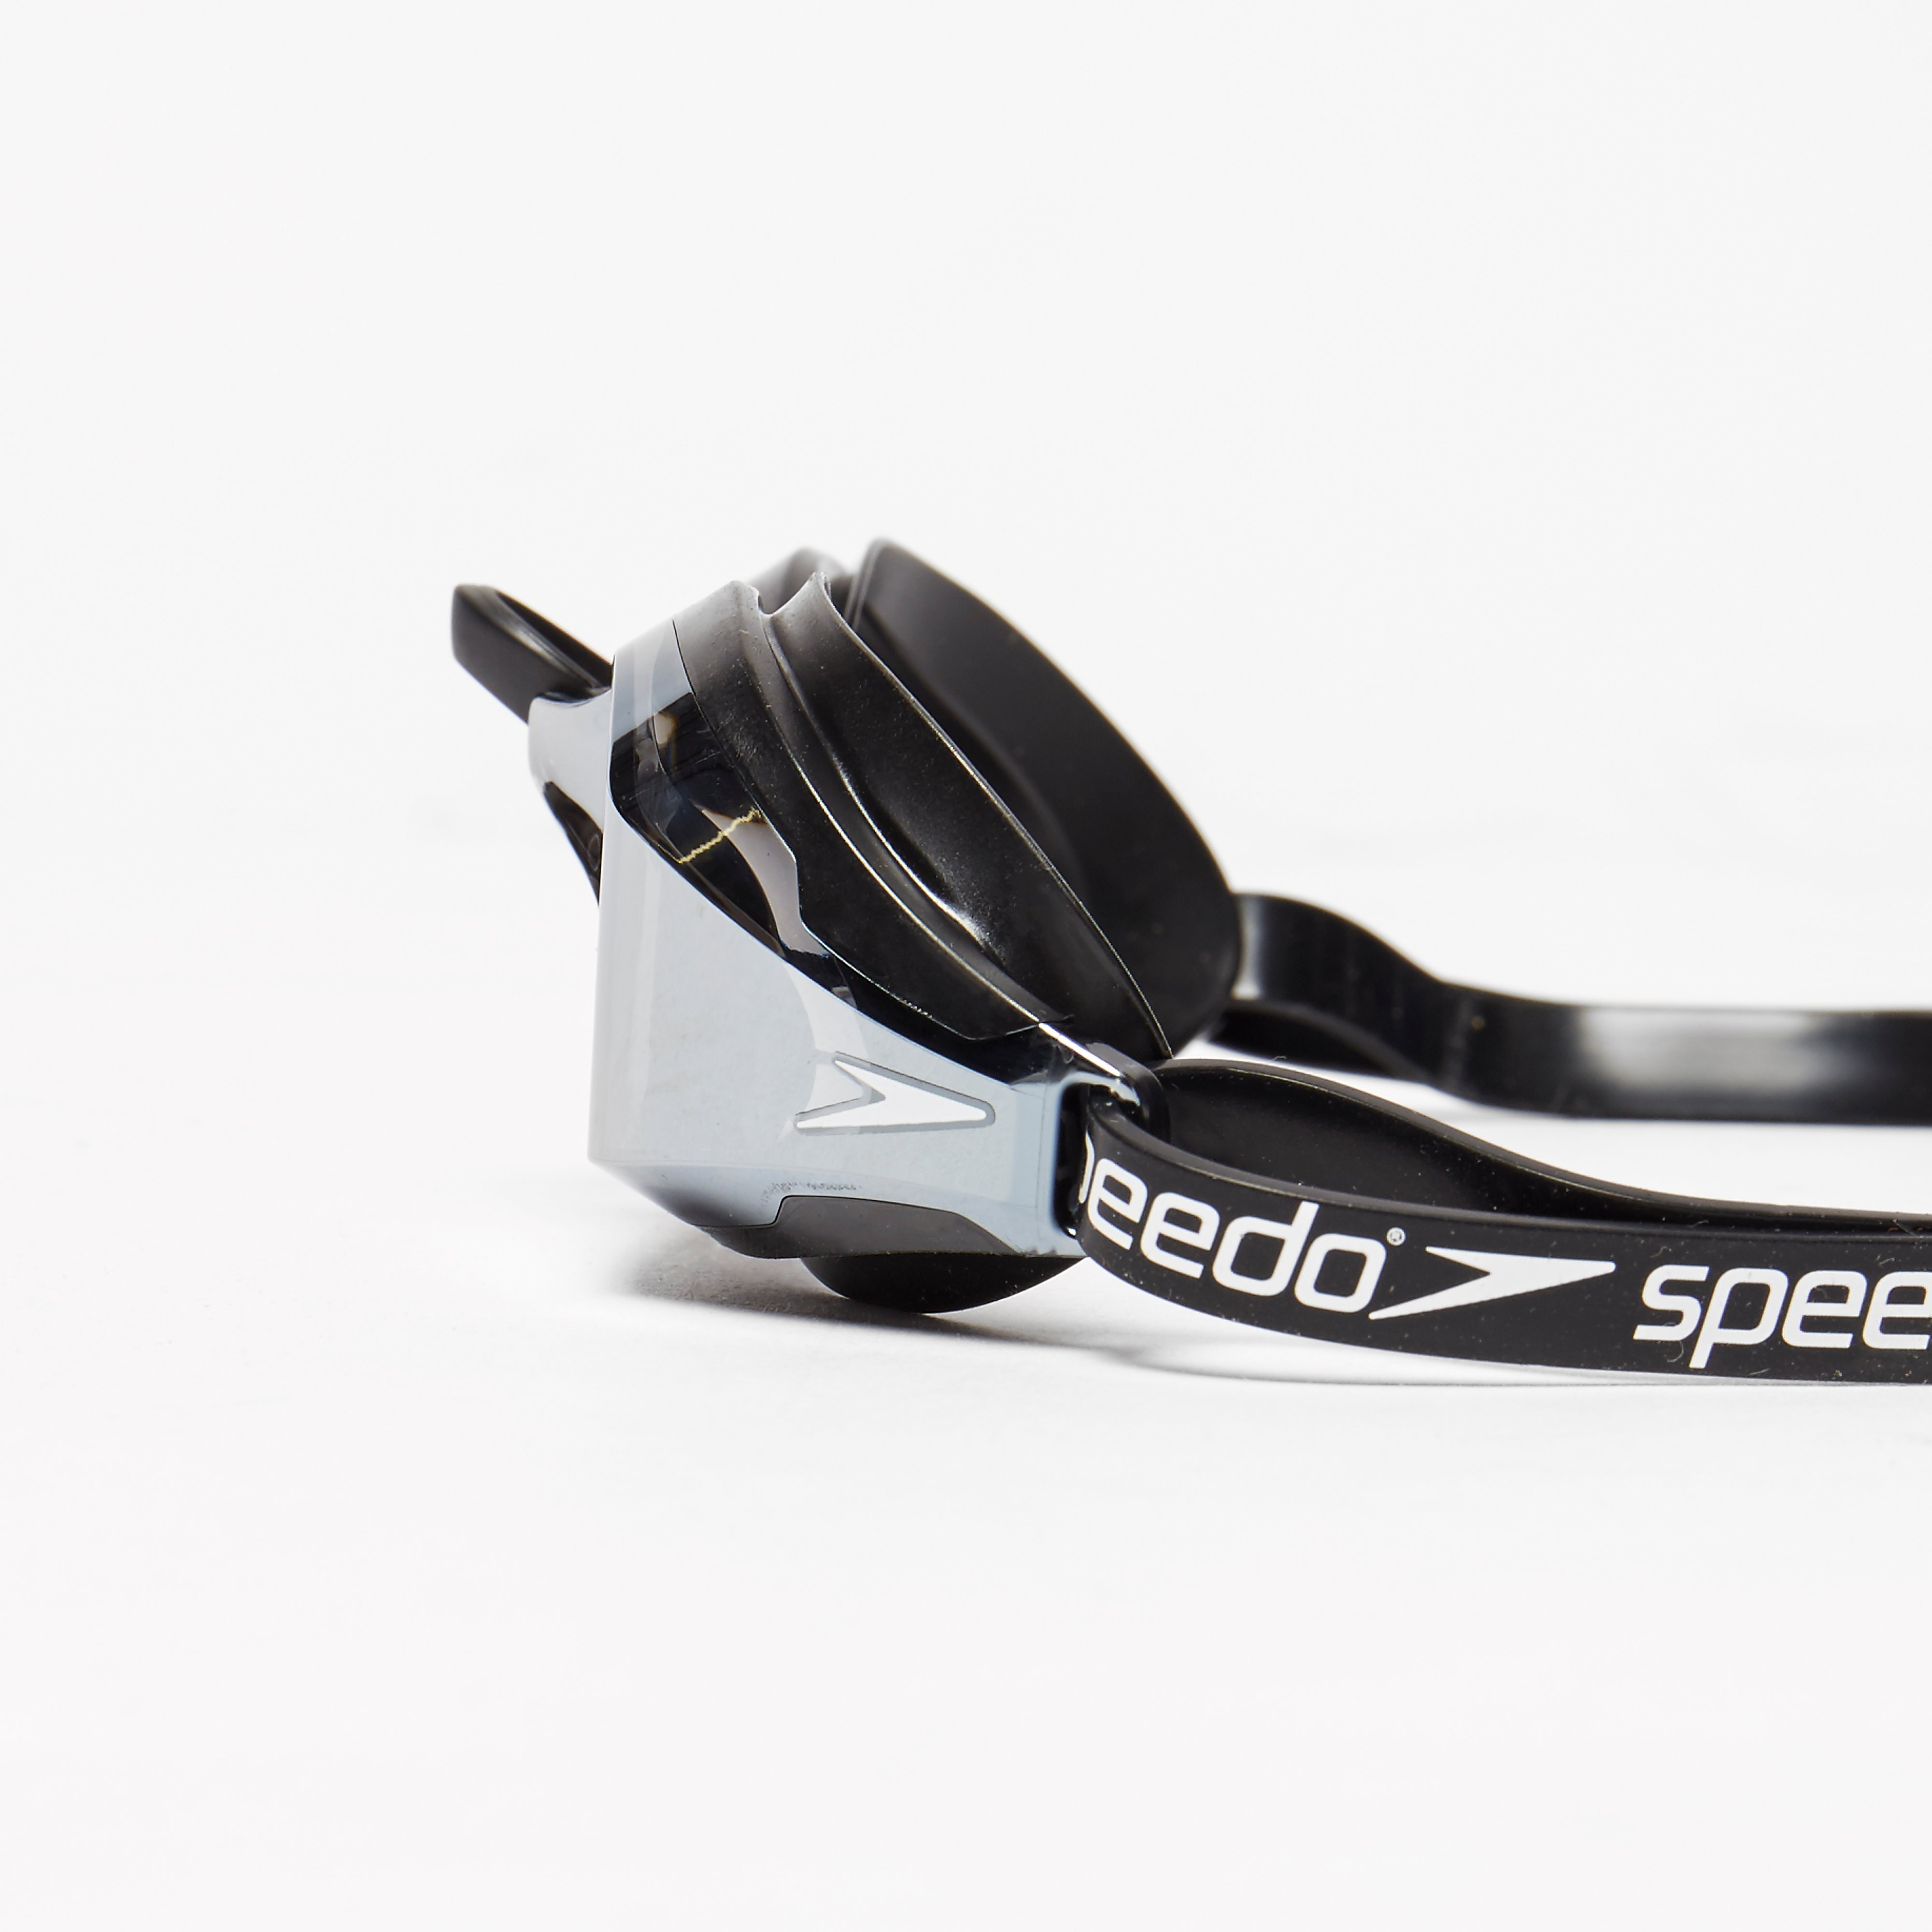 Speedo Fastskin Speedsocket 2 Swimming Goggles